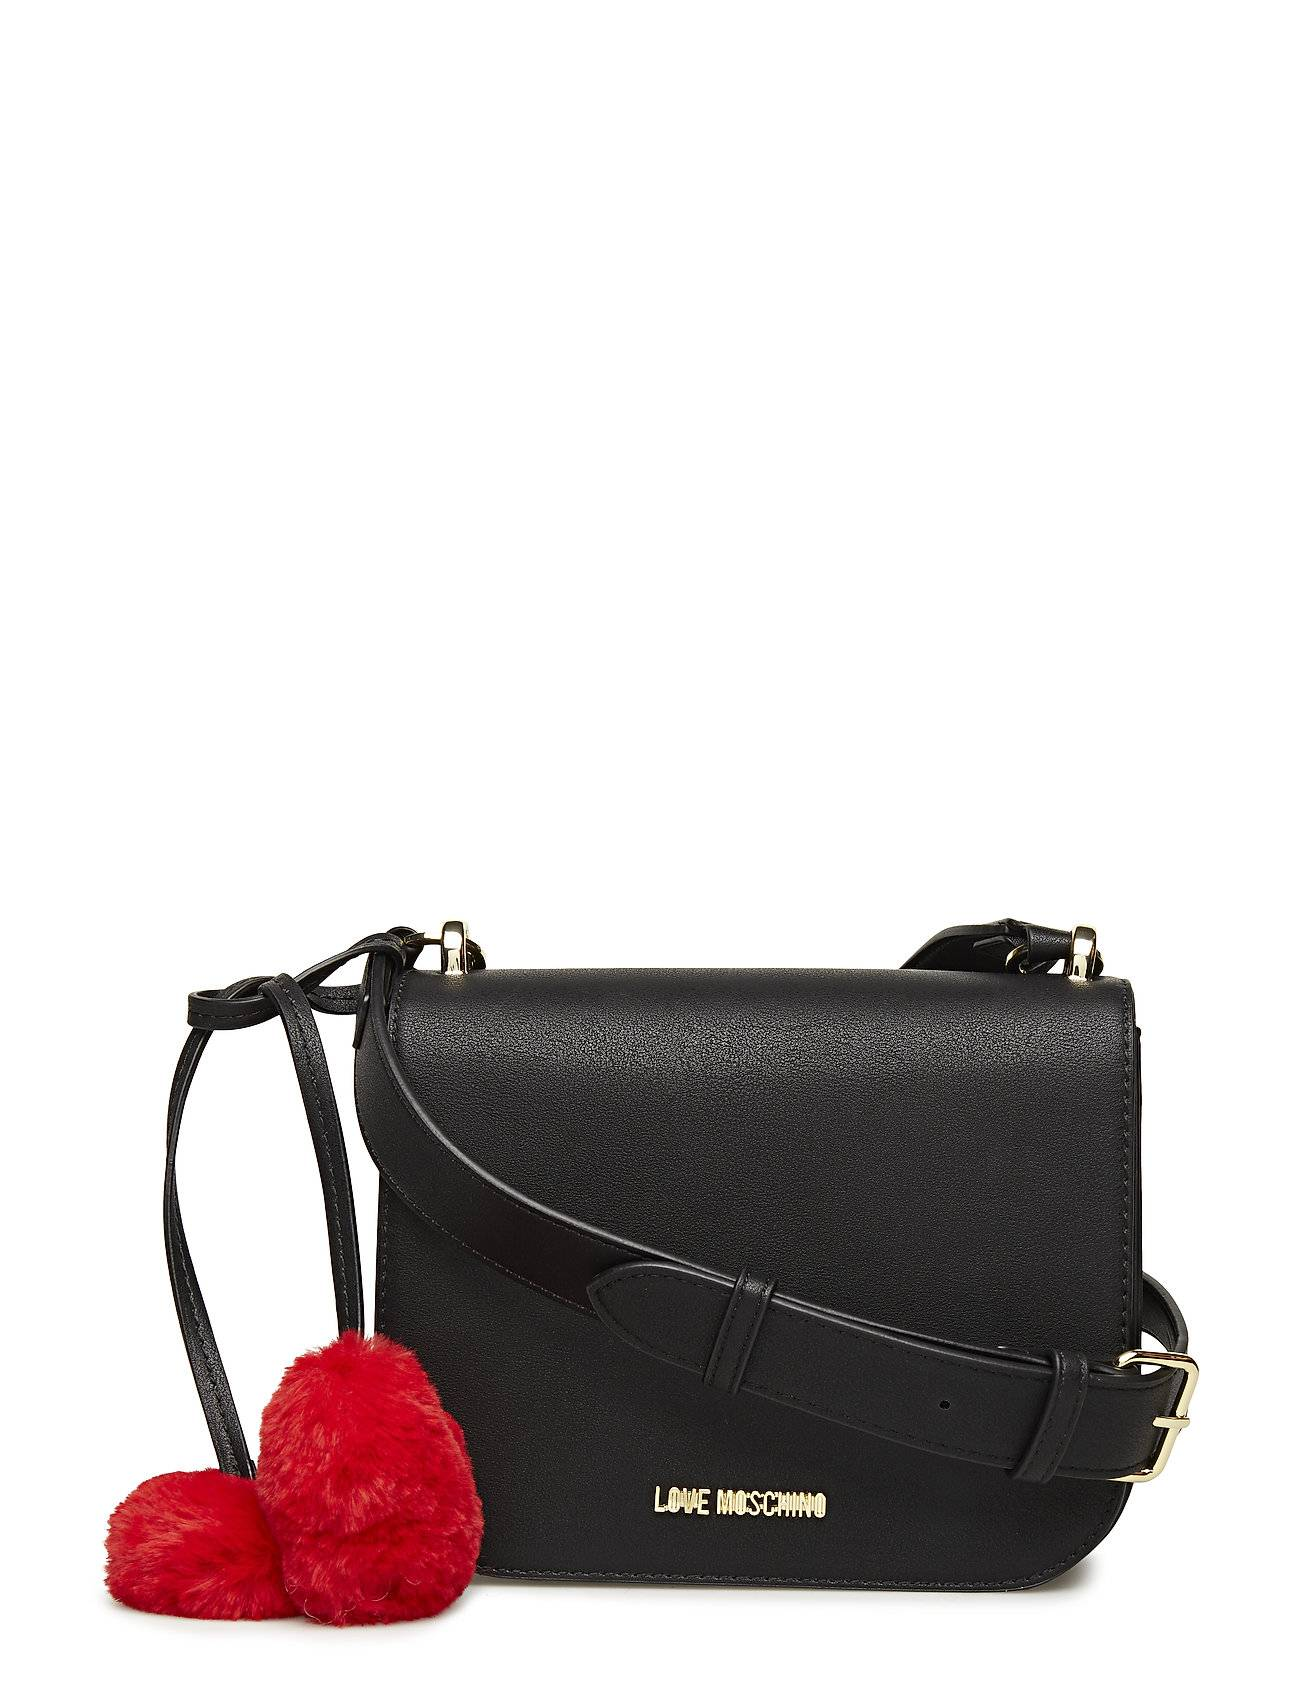 Love Moschino Bags Little Hearts